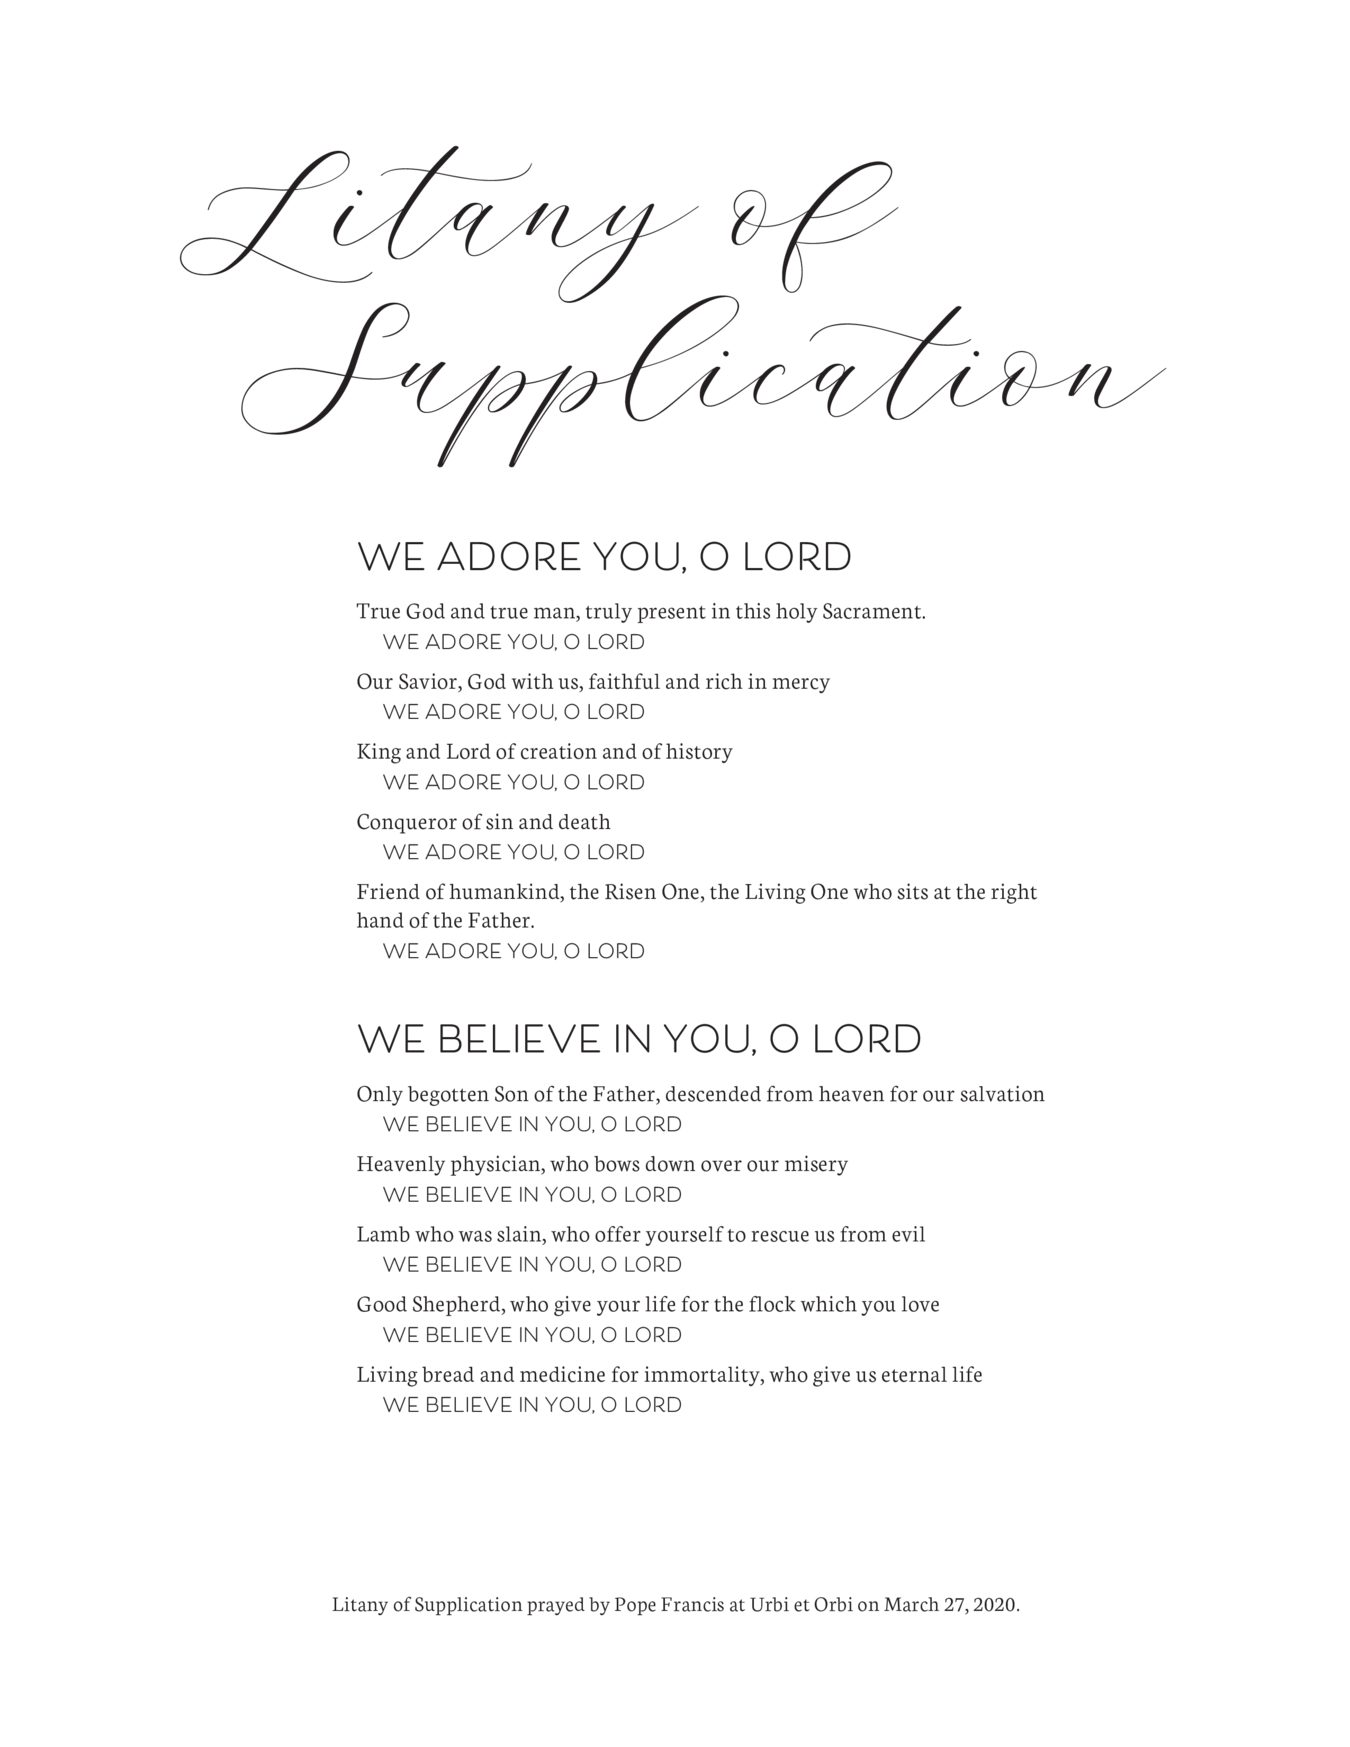 Litany of Supplication